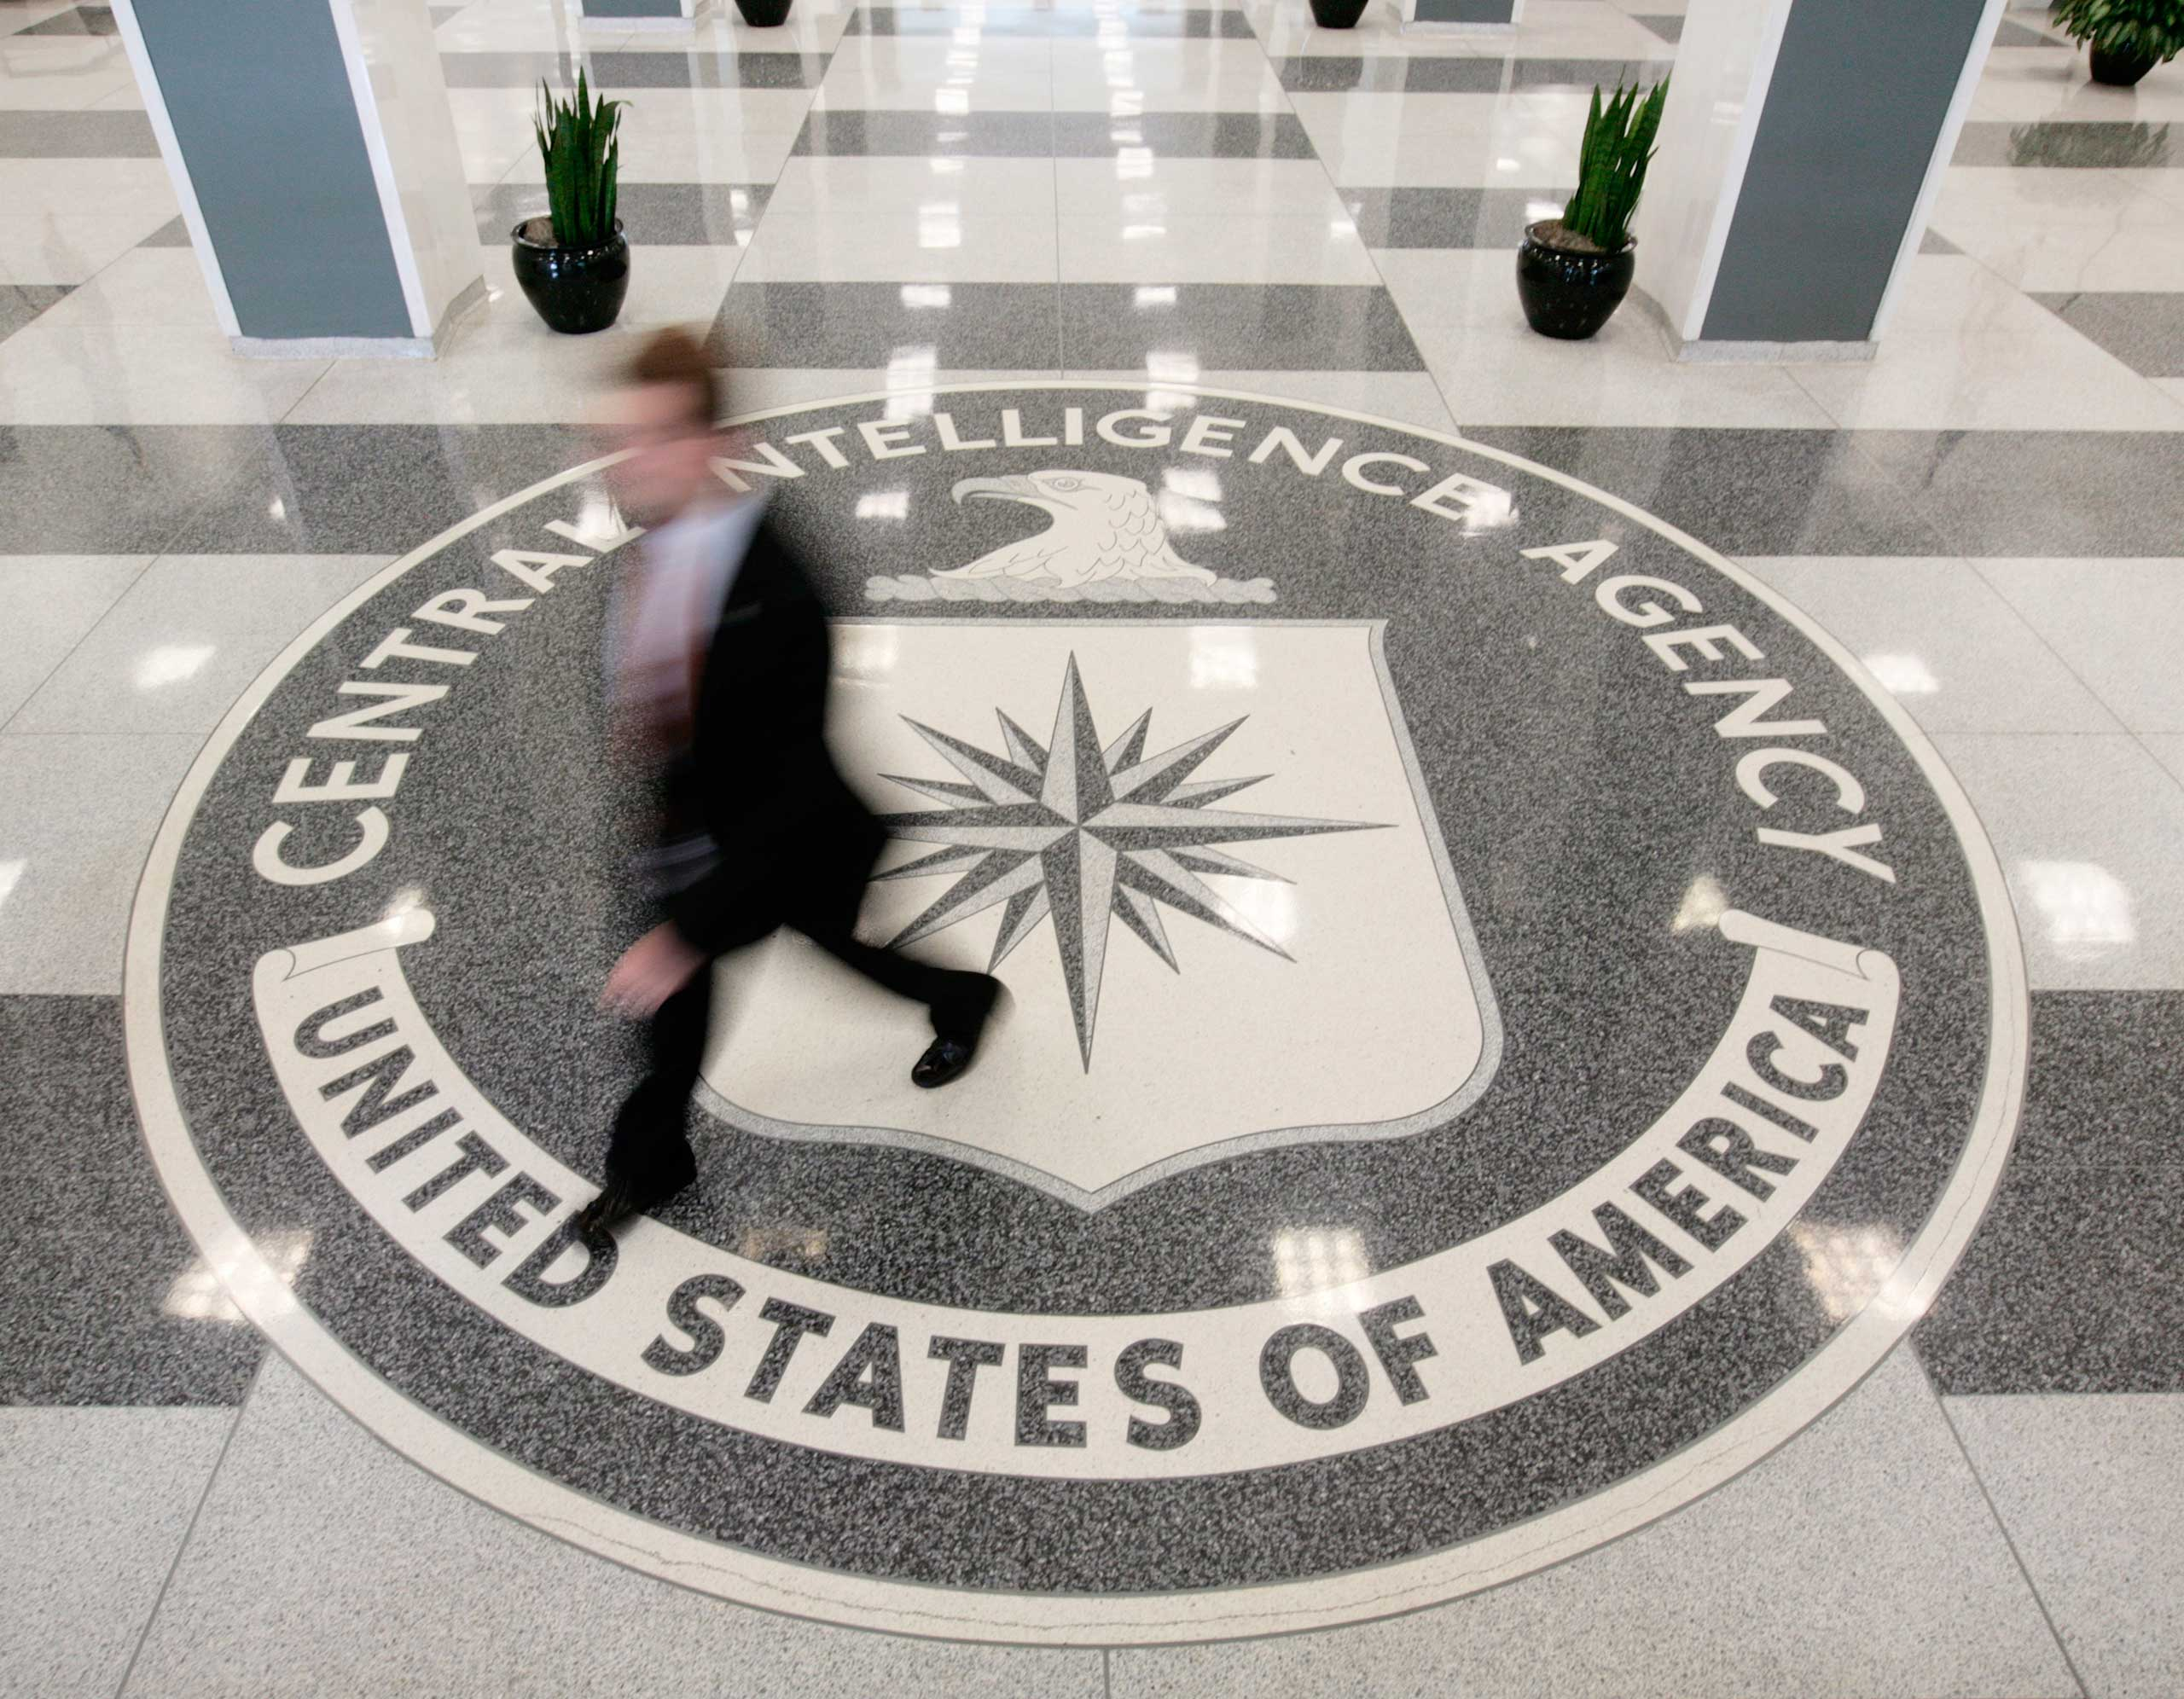 The lobby of the CIA Headquarters Building in McLean, Va.